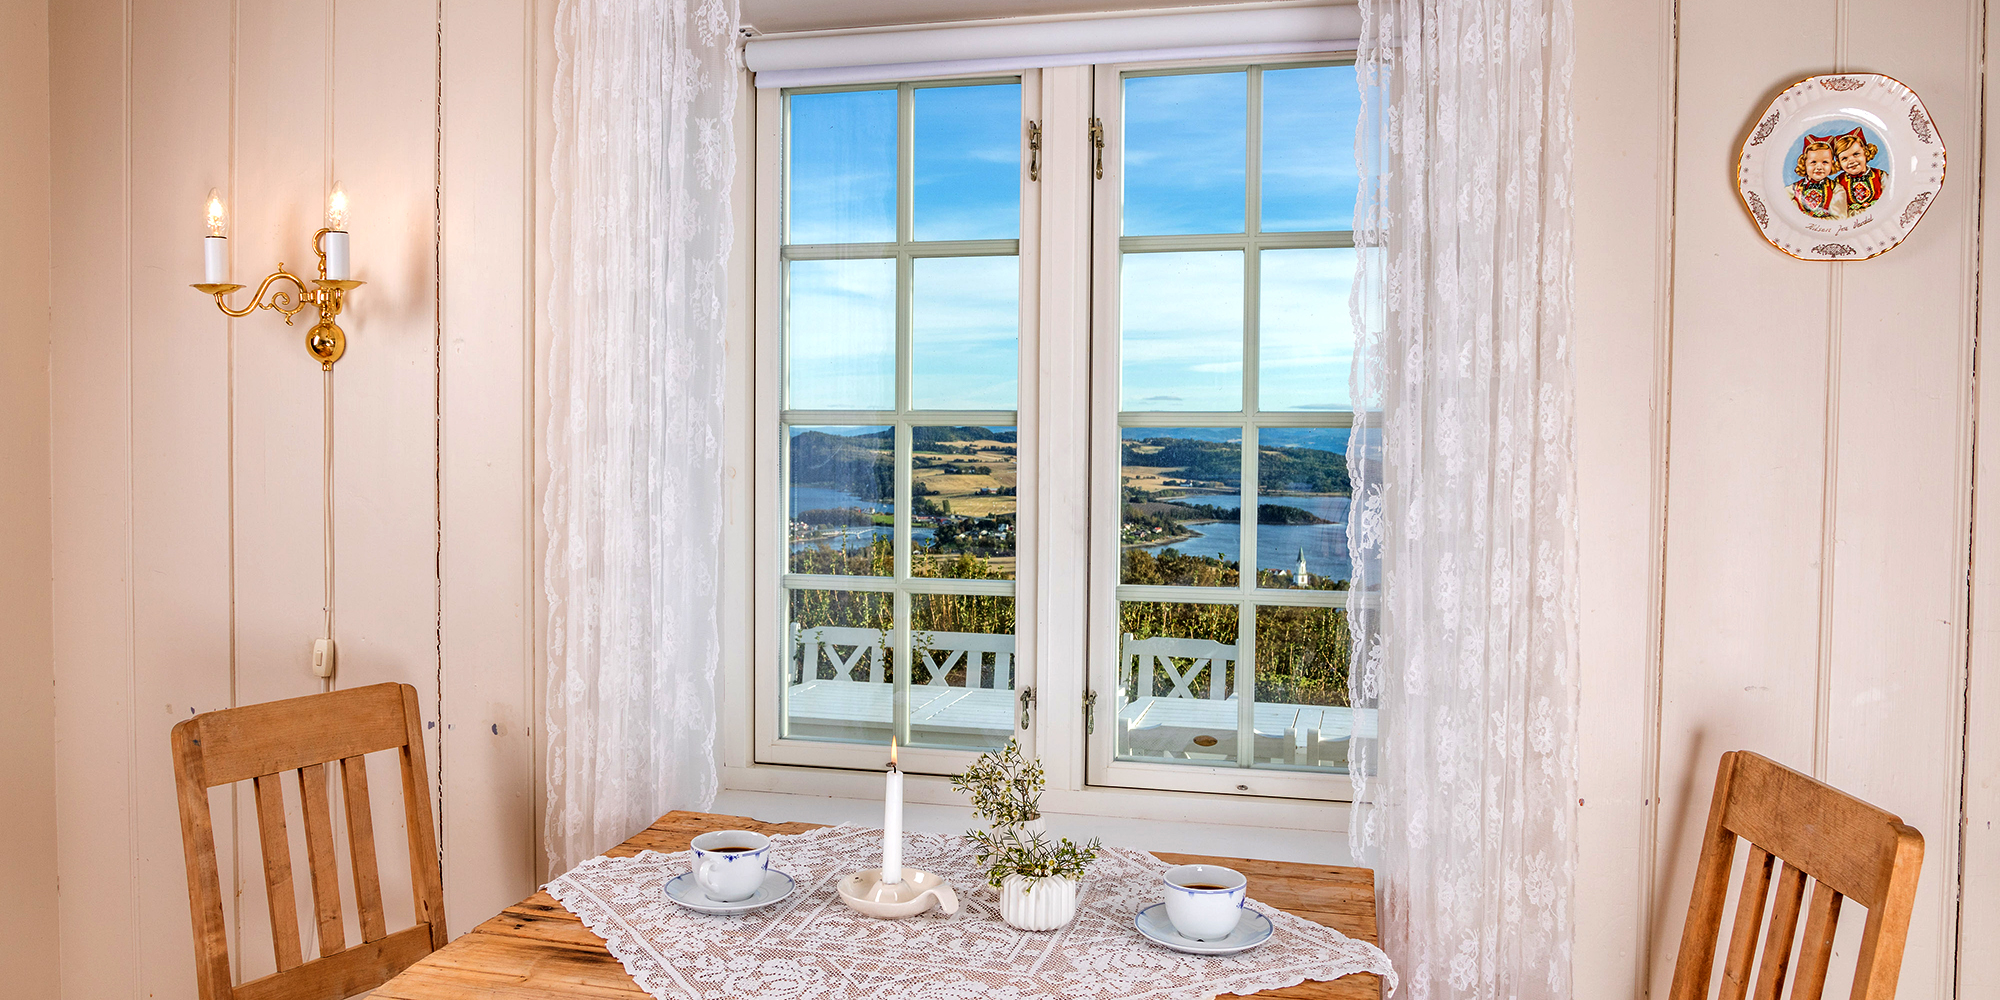 Husfrua gårdshotell - member of the GOlden Road,Inderøy - great view out of the window. Copyright: Husfrua Gårdshotell